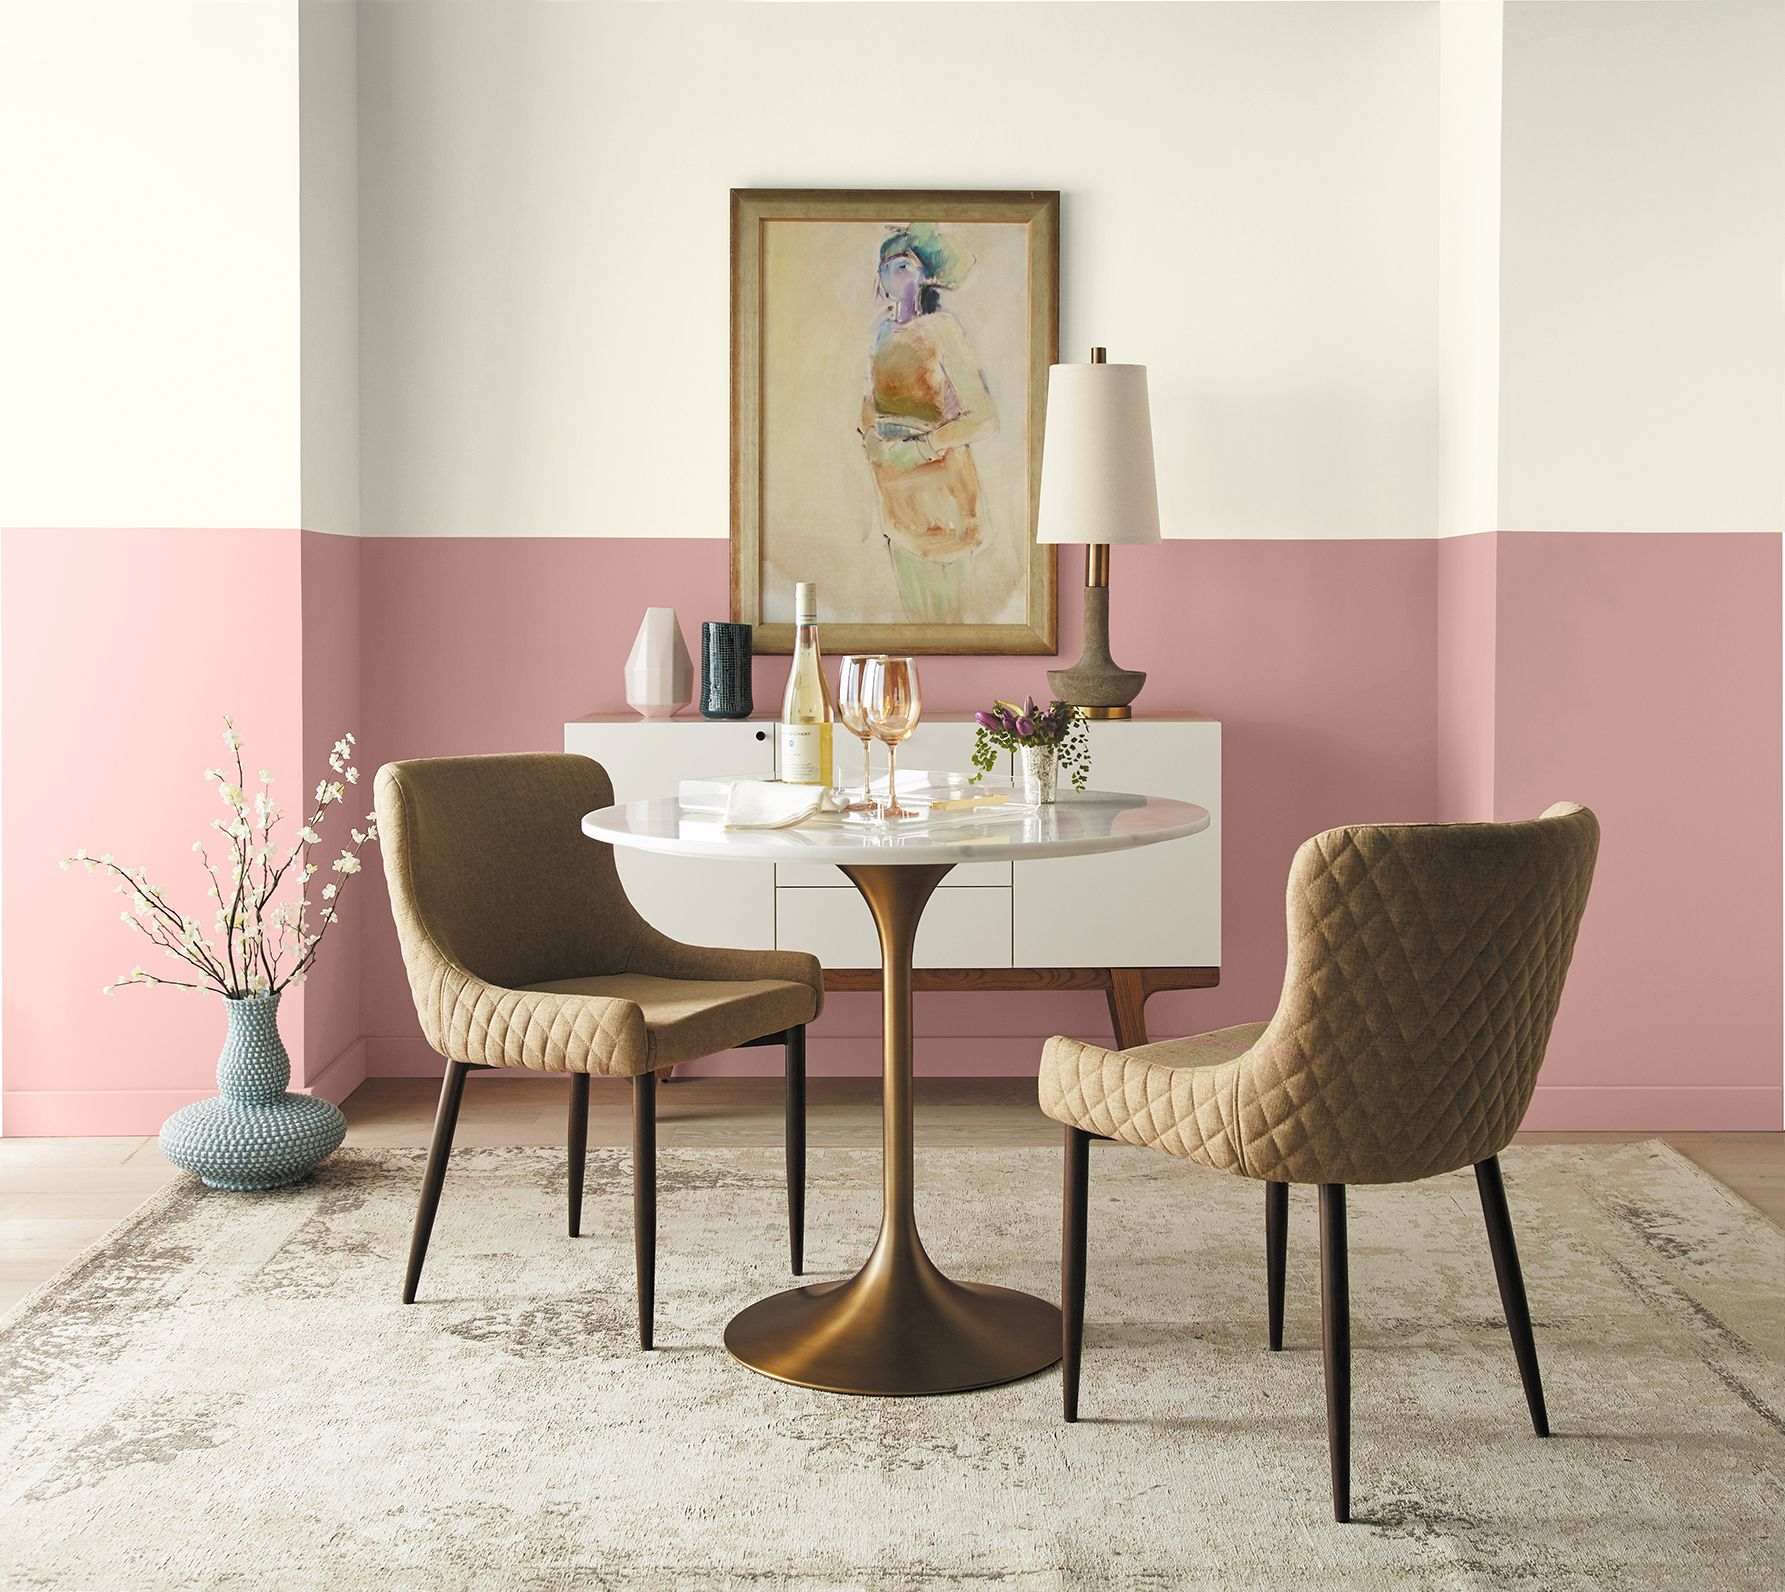 Behr Color Trends 2020 , The Paint Colors Behr Wants You to Use